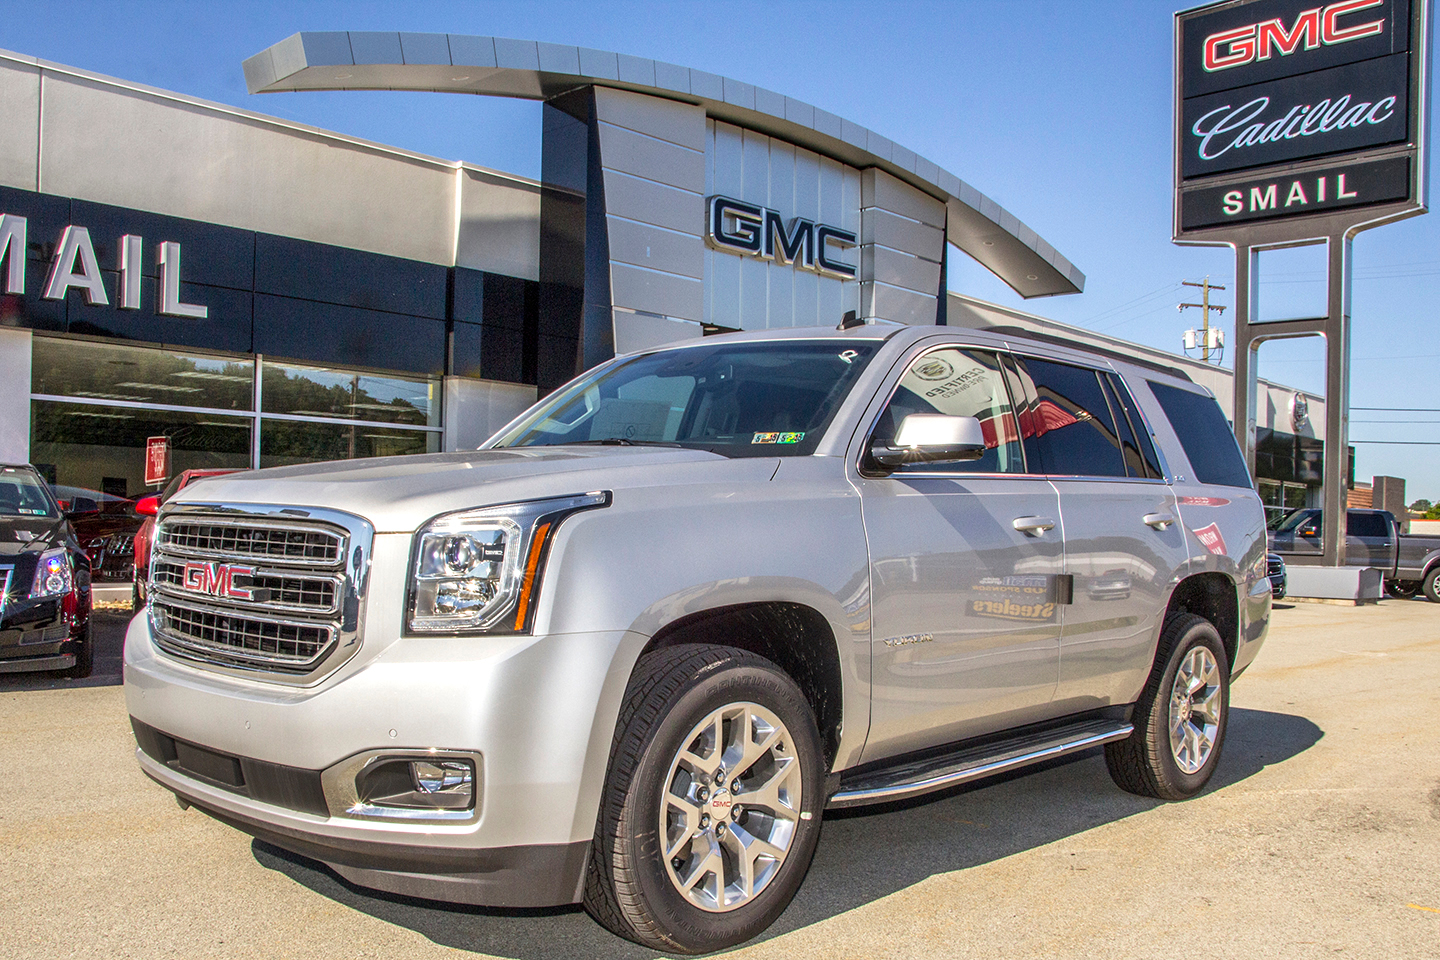 Smail Buick Gmc Cadillac In Greensburg Pa Auto Dealers